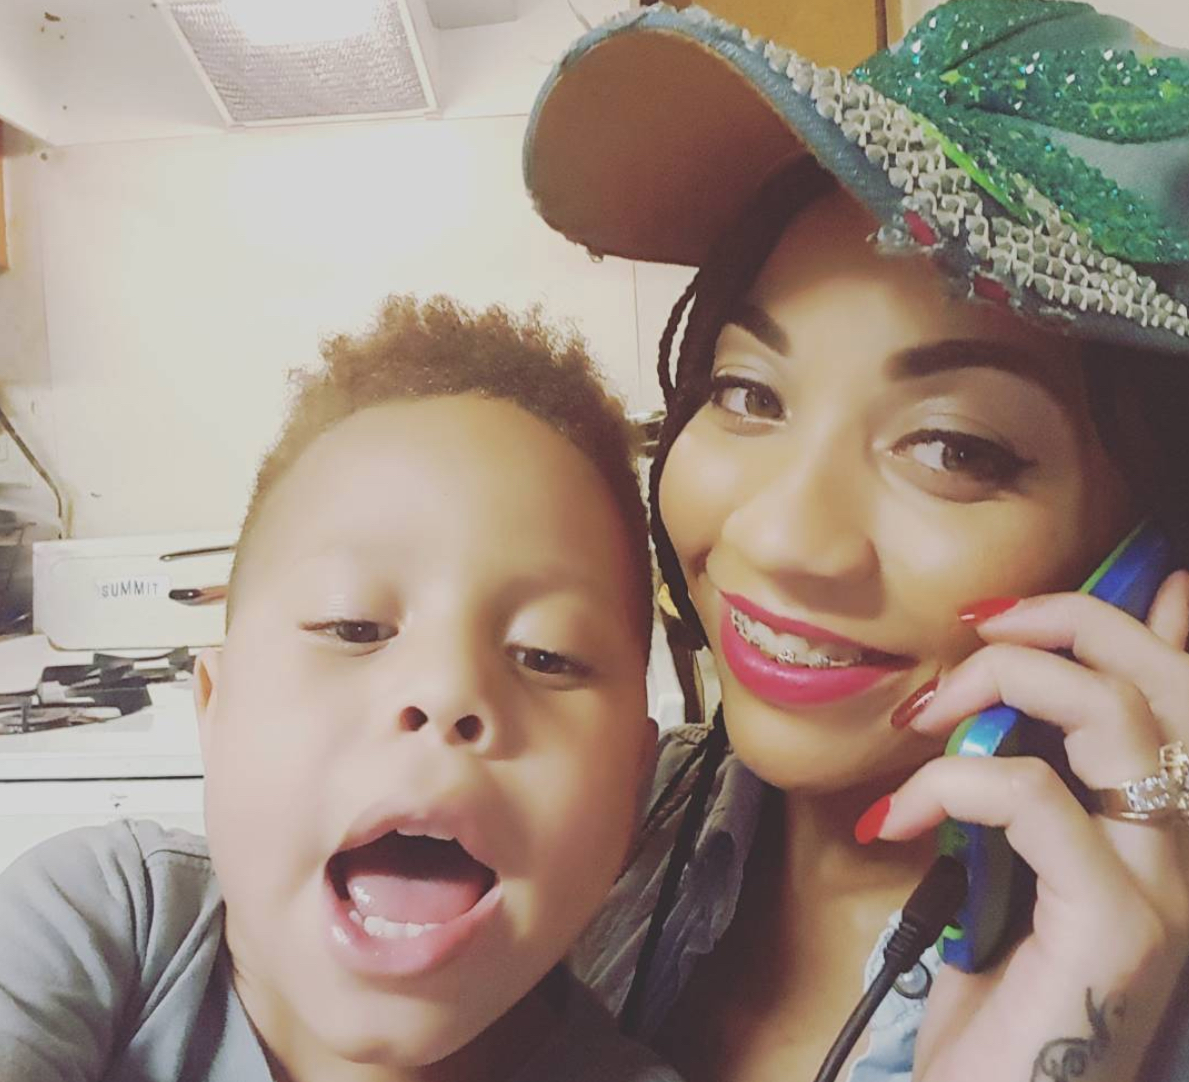 Korryn Gaines, 23, was shot and killed by Baltimore police on Monday, August 1, 2016 inside her Maryland home. Her 5-year-son was also shot. In February 2018, her family was awarded #37 million in a controversial verdict.